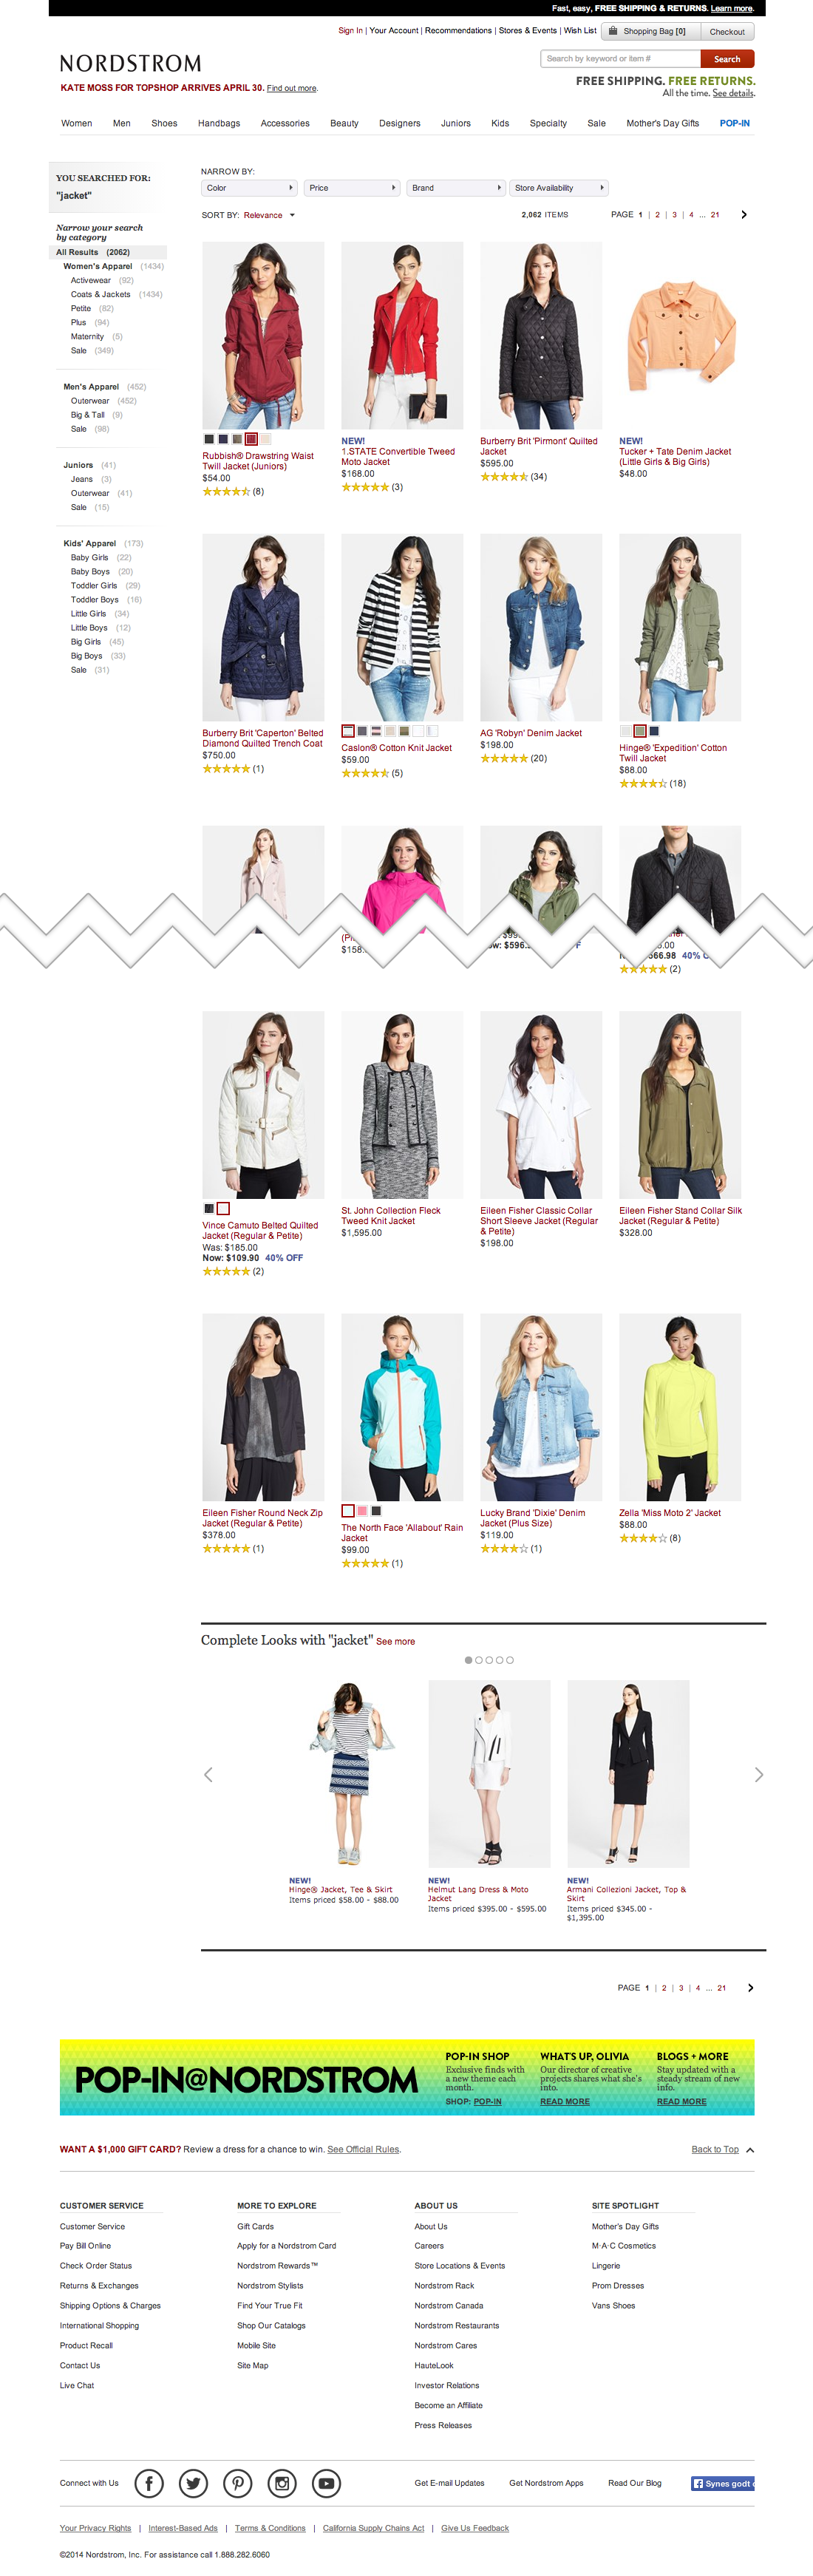 Nordstrom's Search Results Page